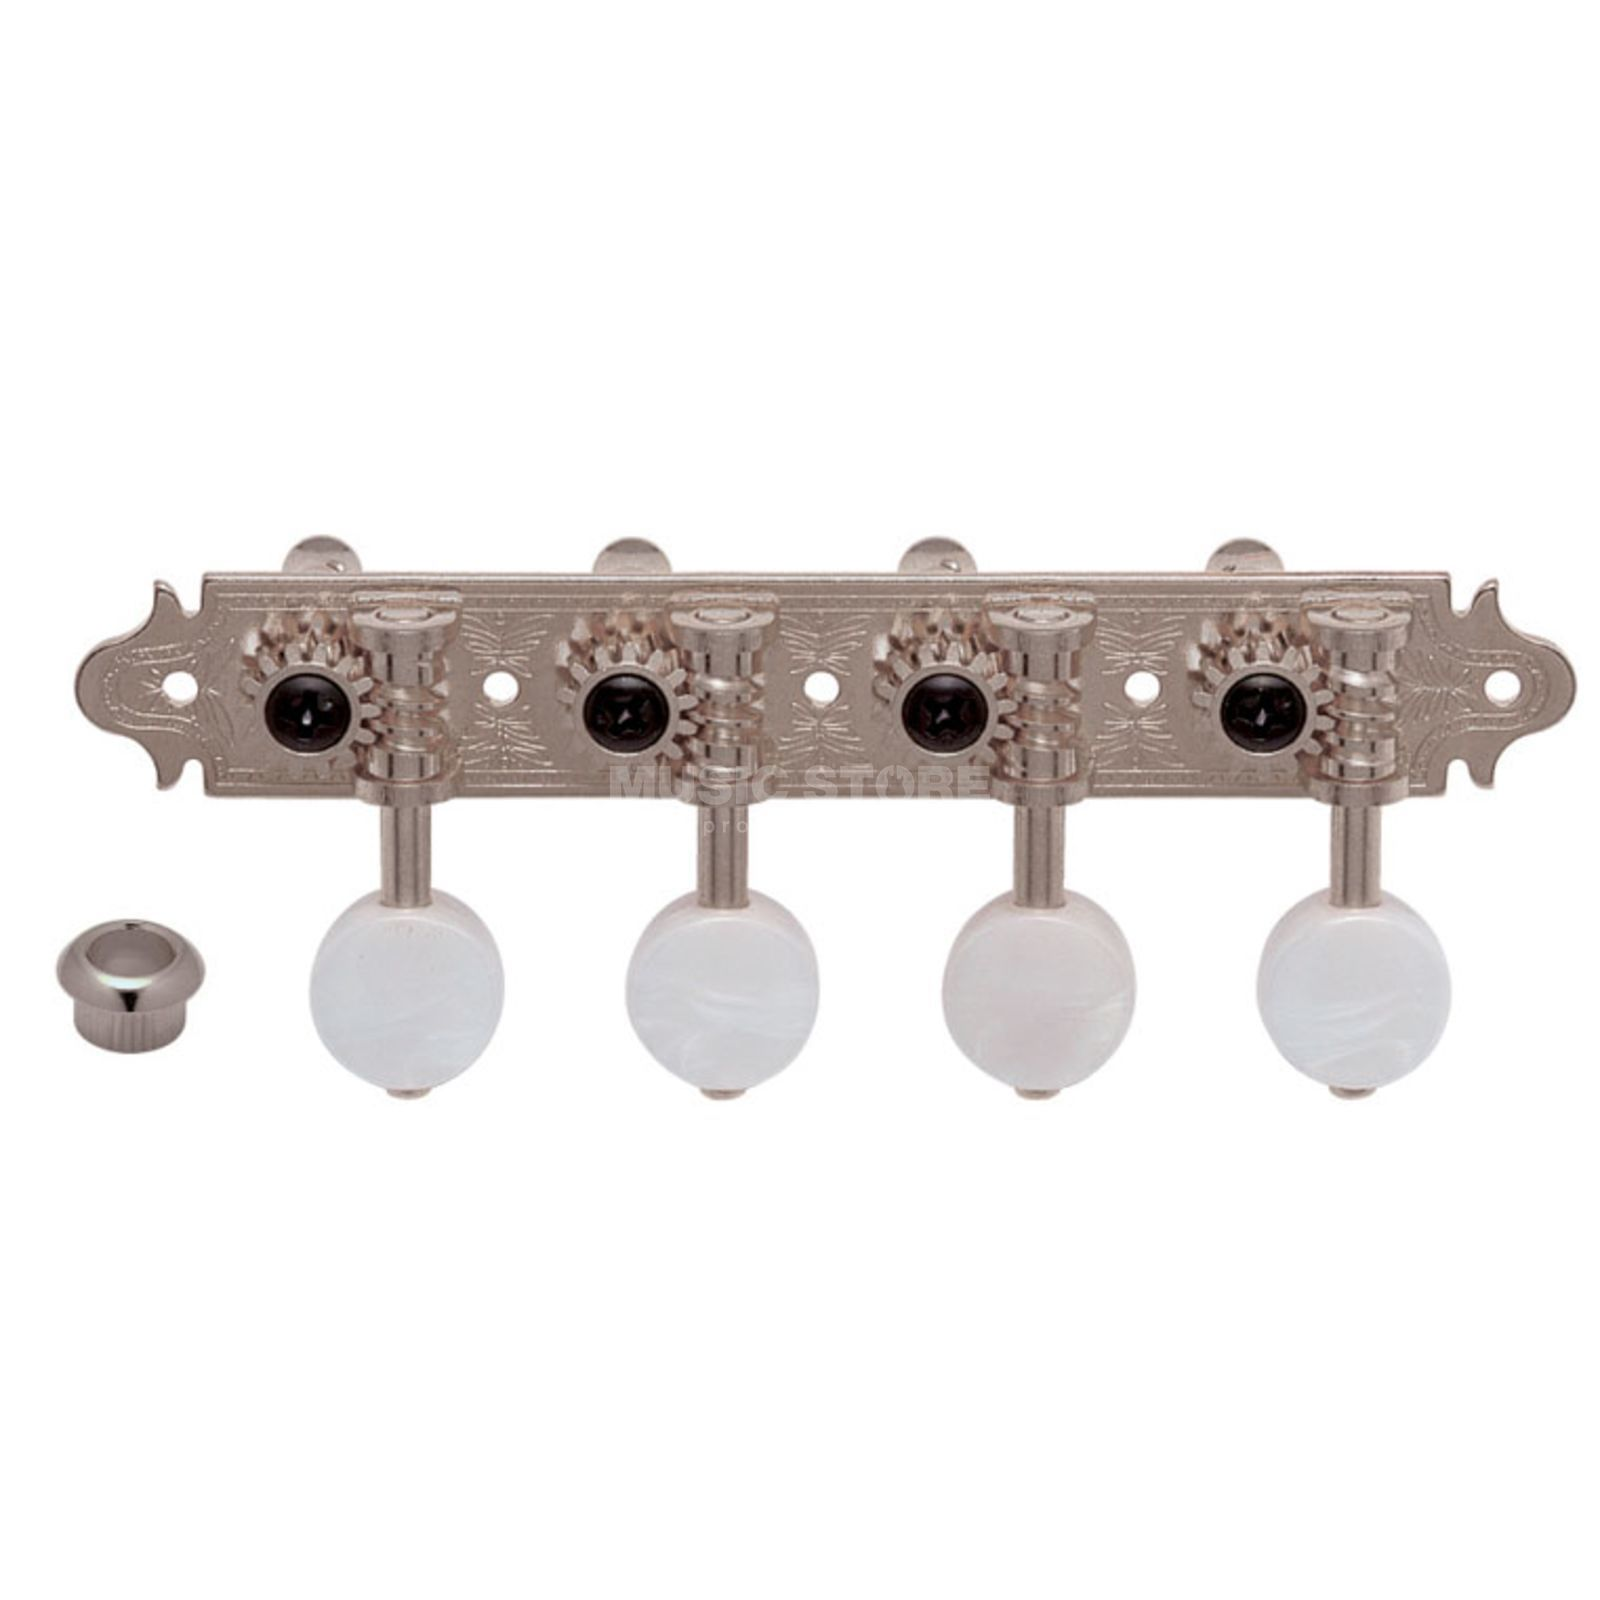 Gotoh MA-40 Mandolinenmechanik N 4L 4R MP Button nickel Produktbillede